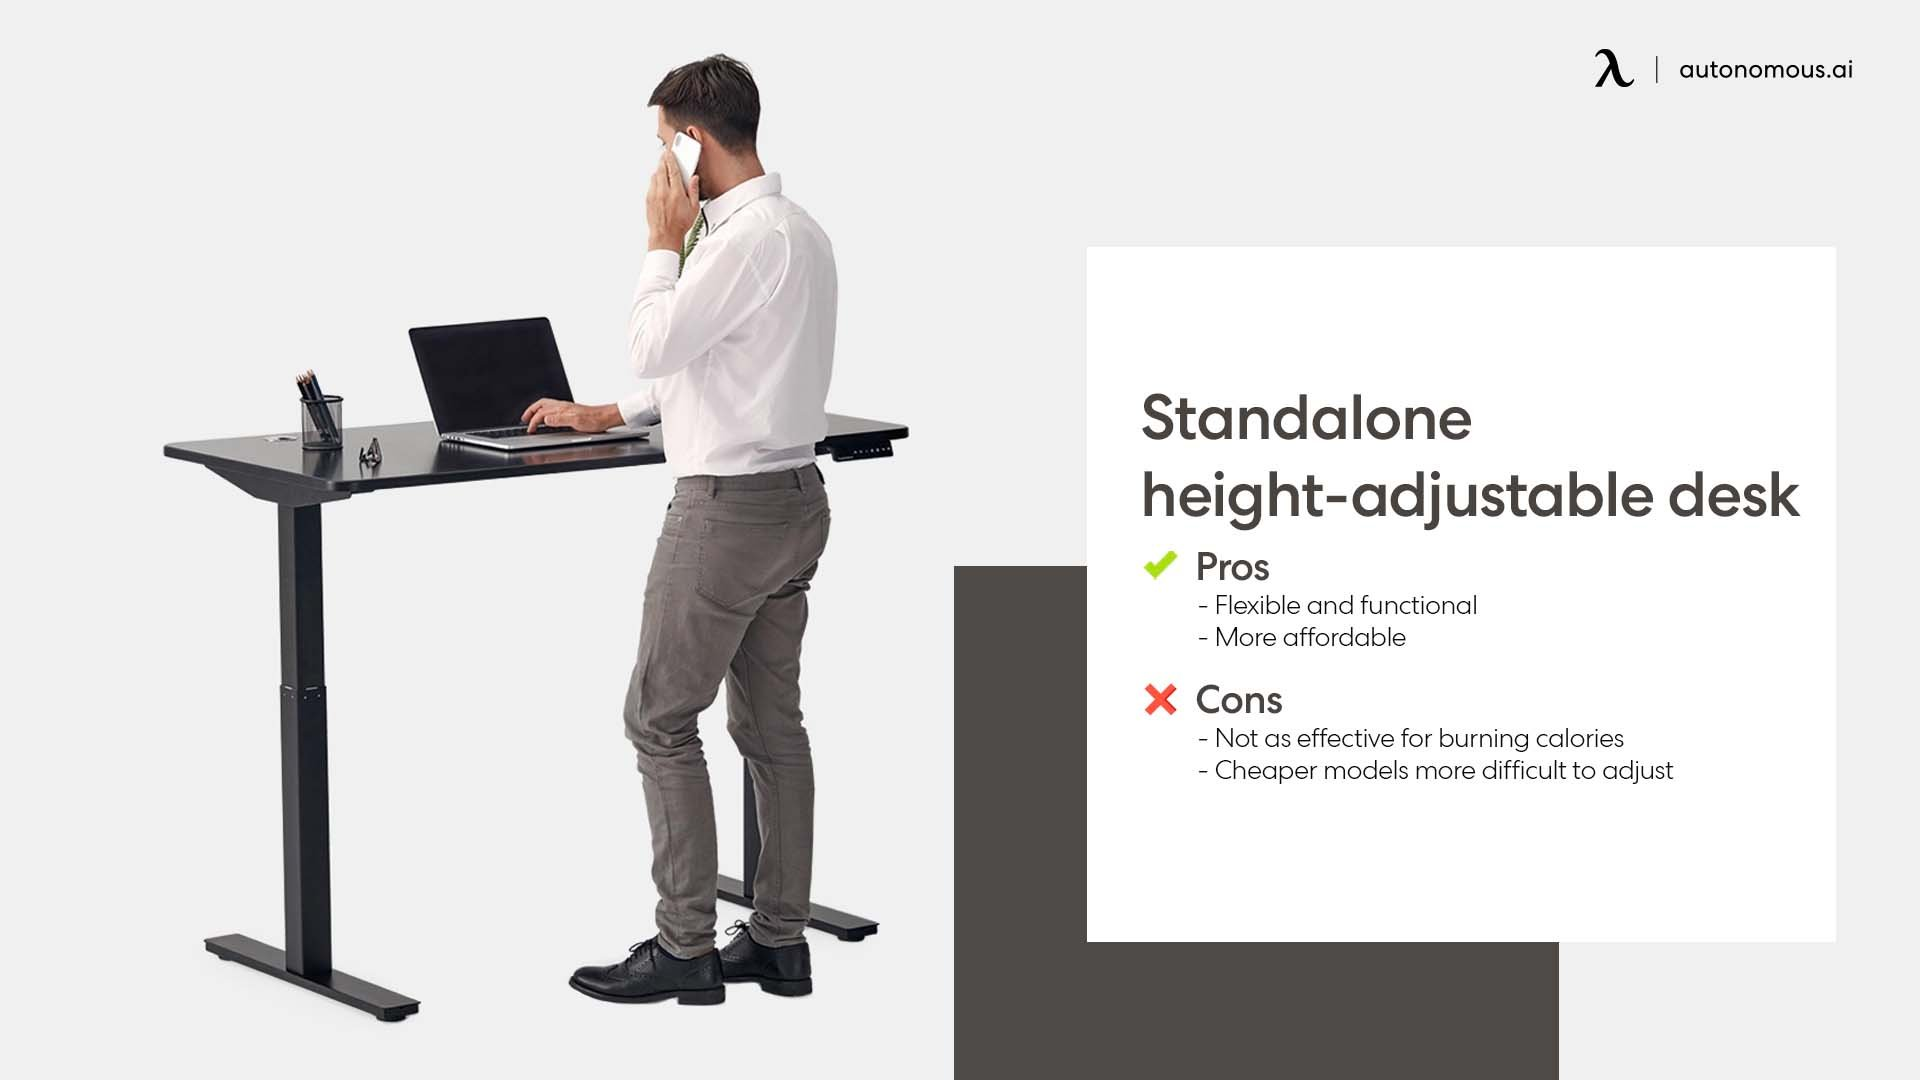 Photo of standalone height-adjustable desk